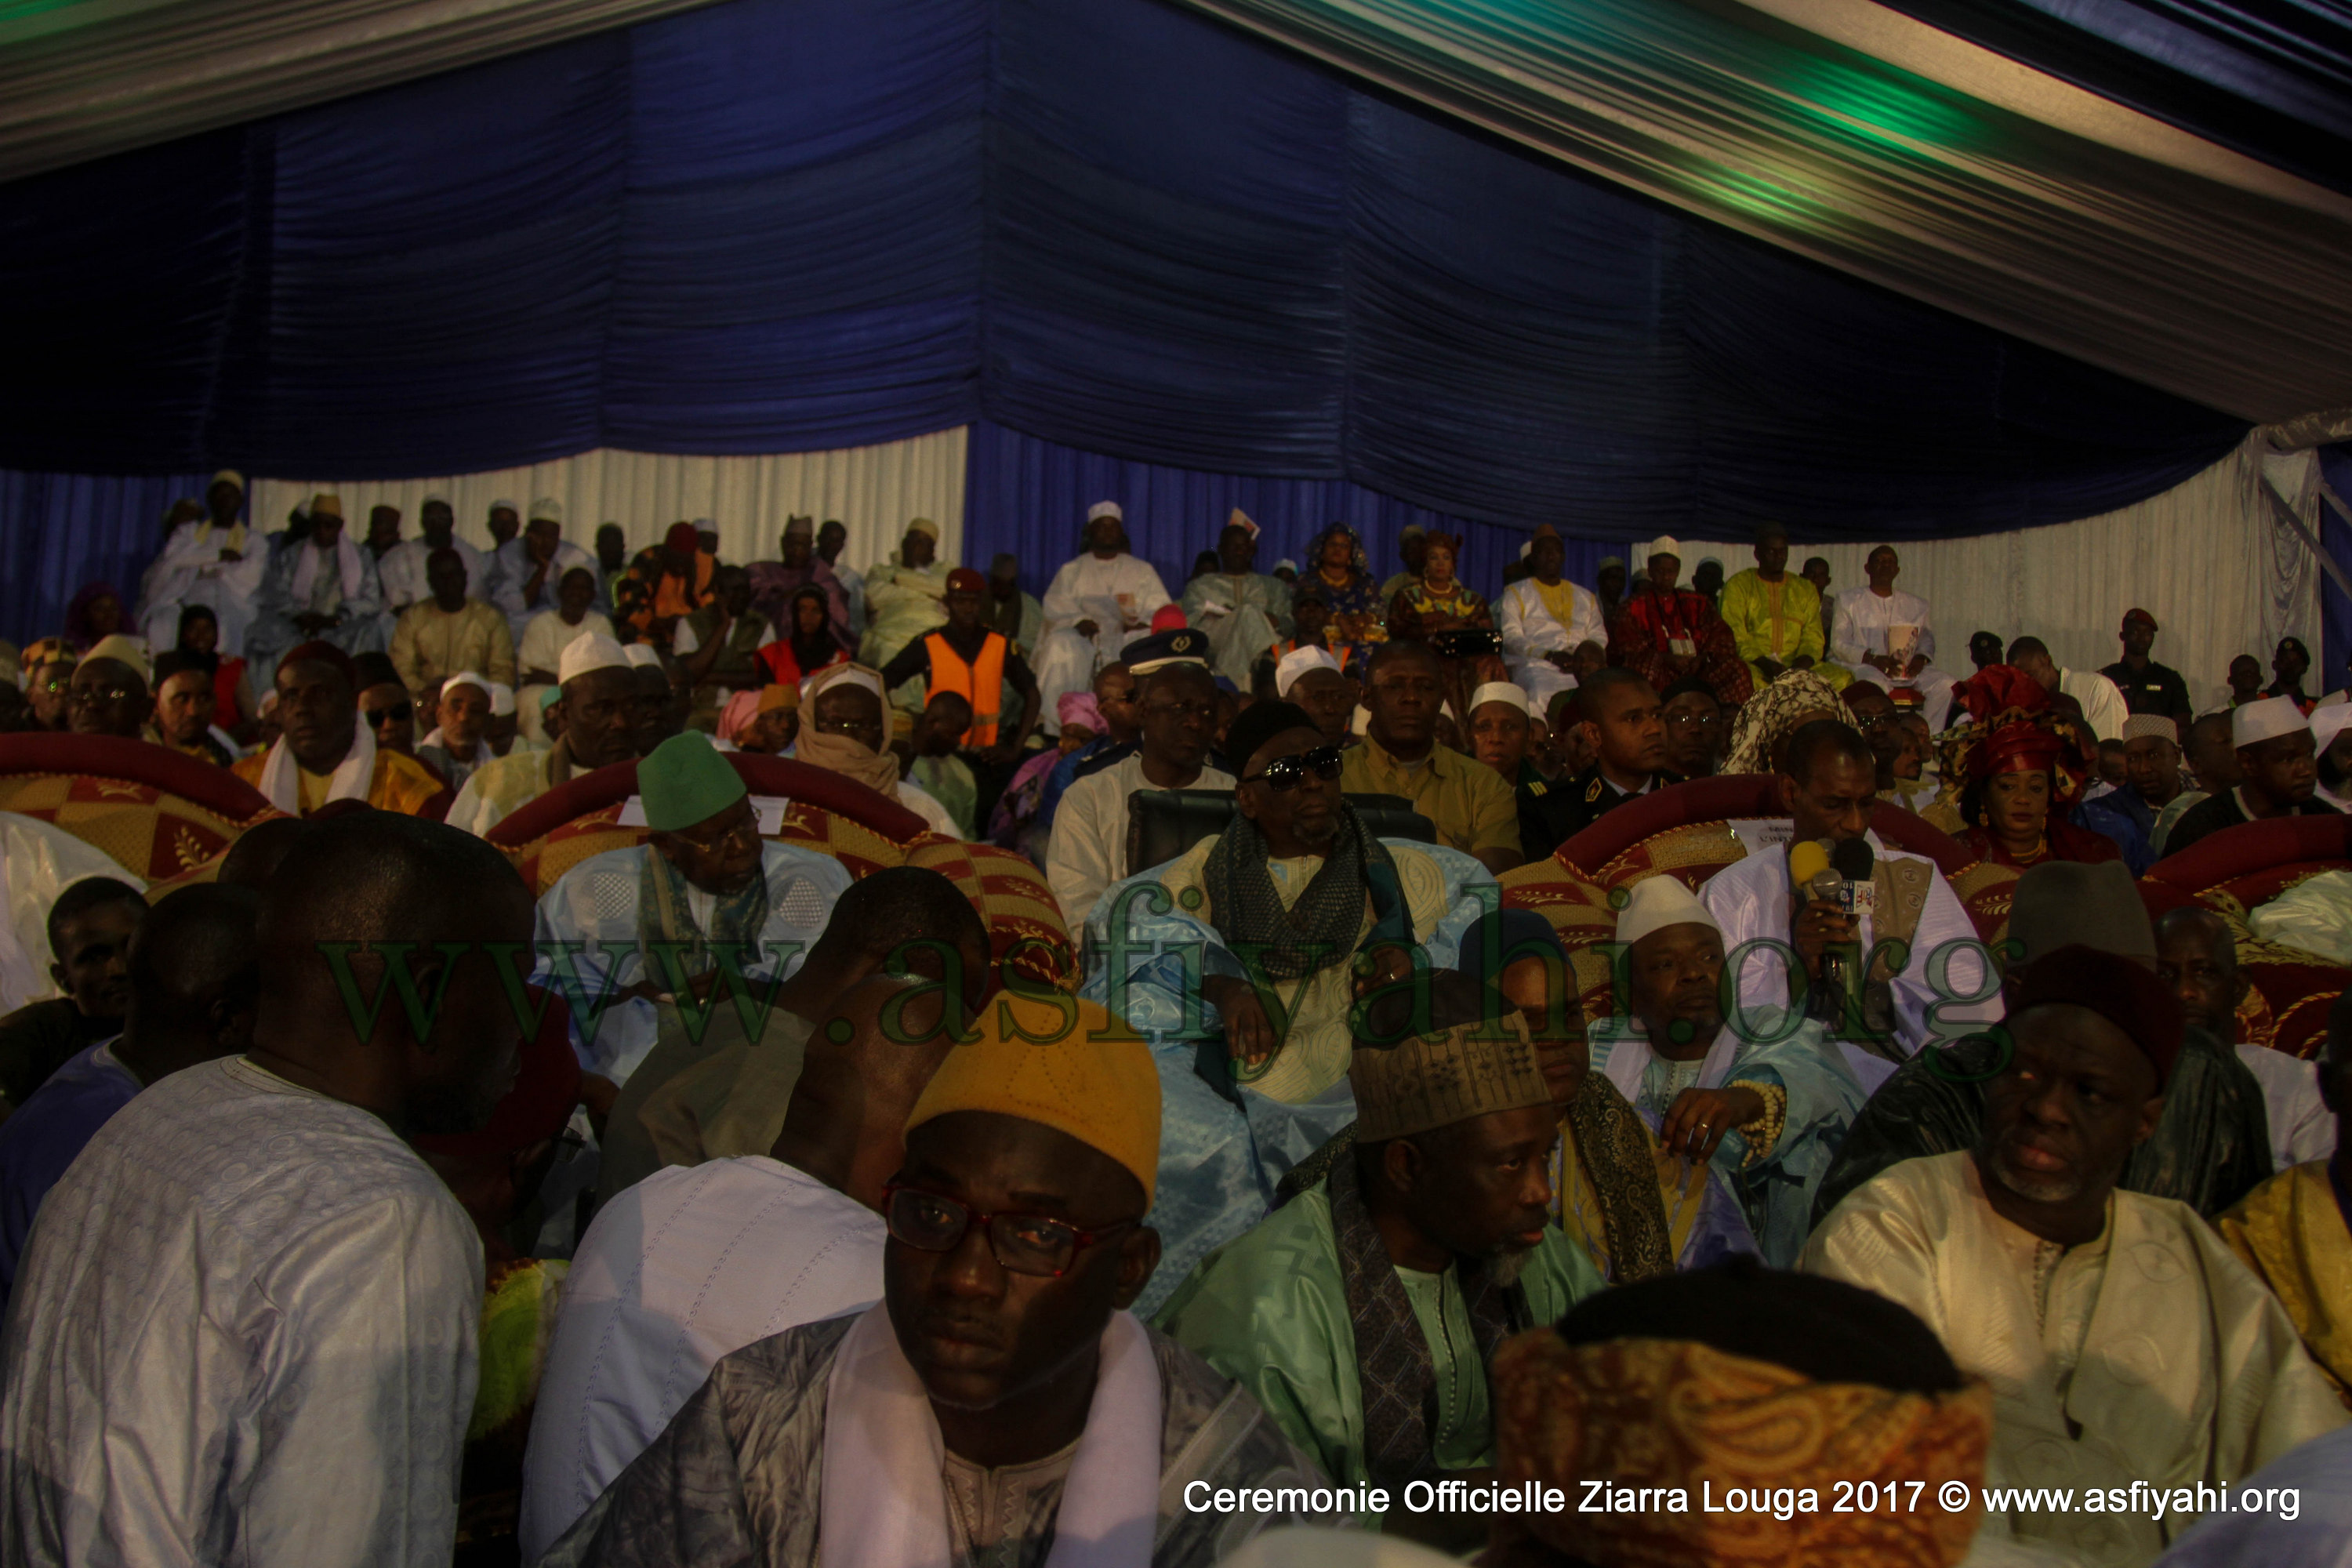 PHOTOS - LOUGA - Les Images de la Cérémonie Officielle de la Ziarra Thierno Mountaga Daha Tall (rta), édition 2017